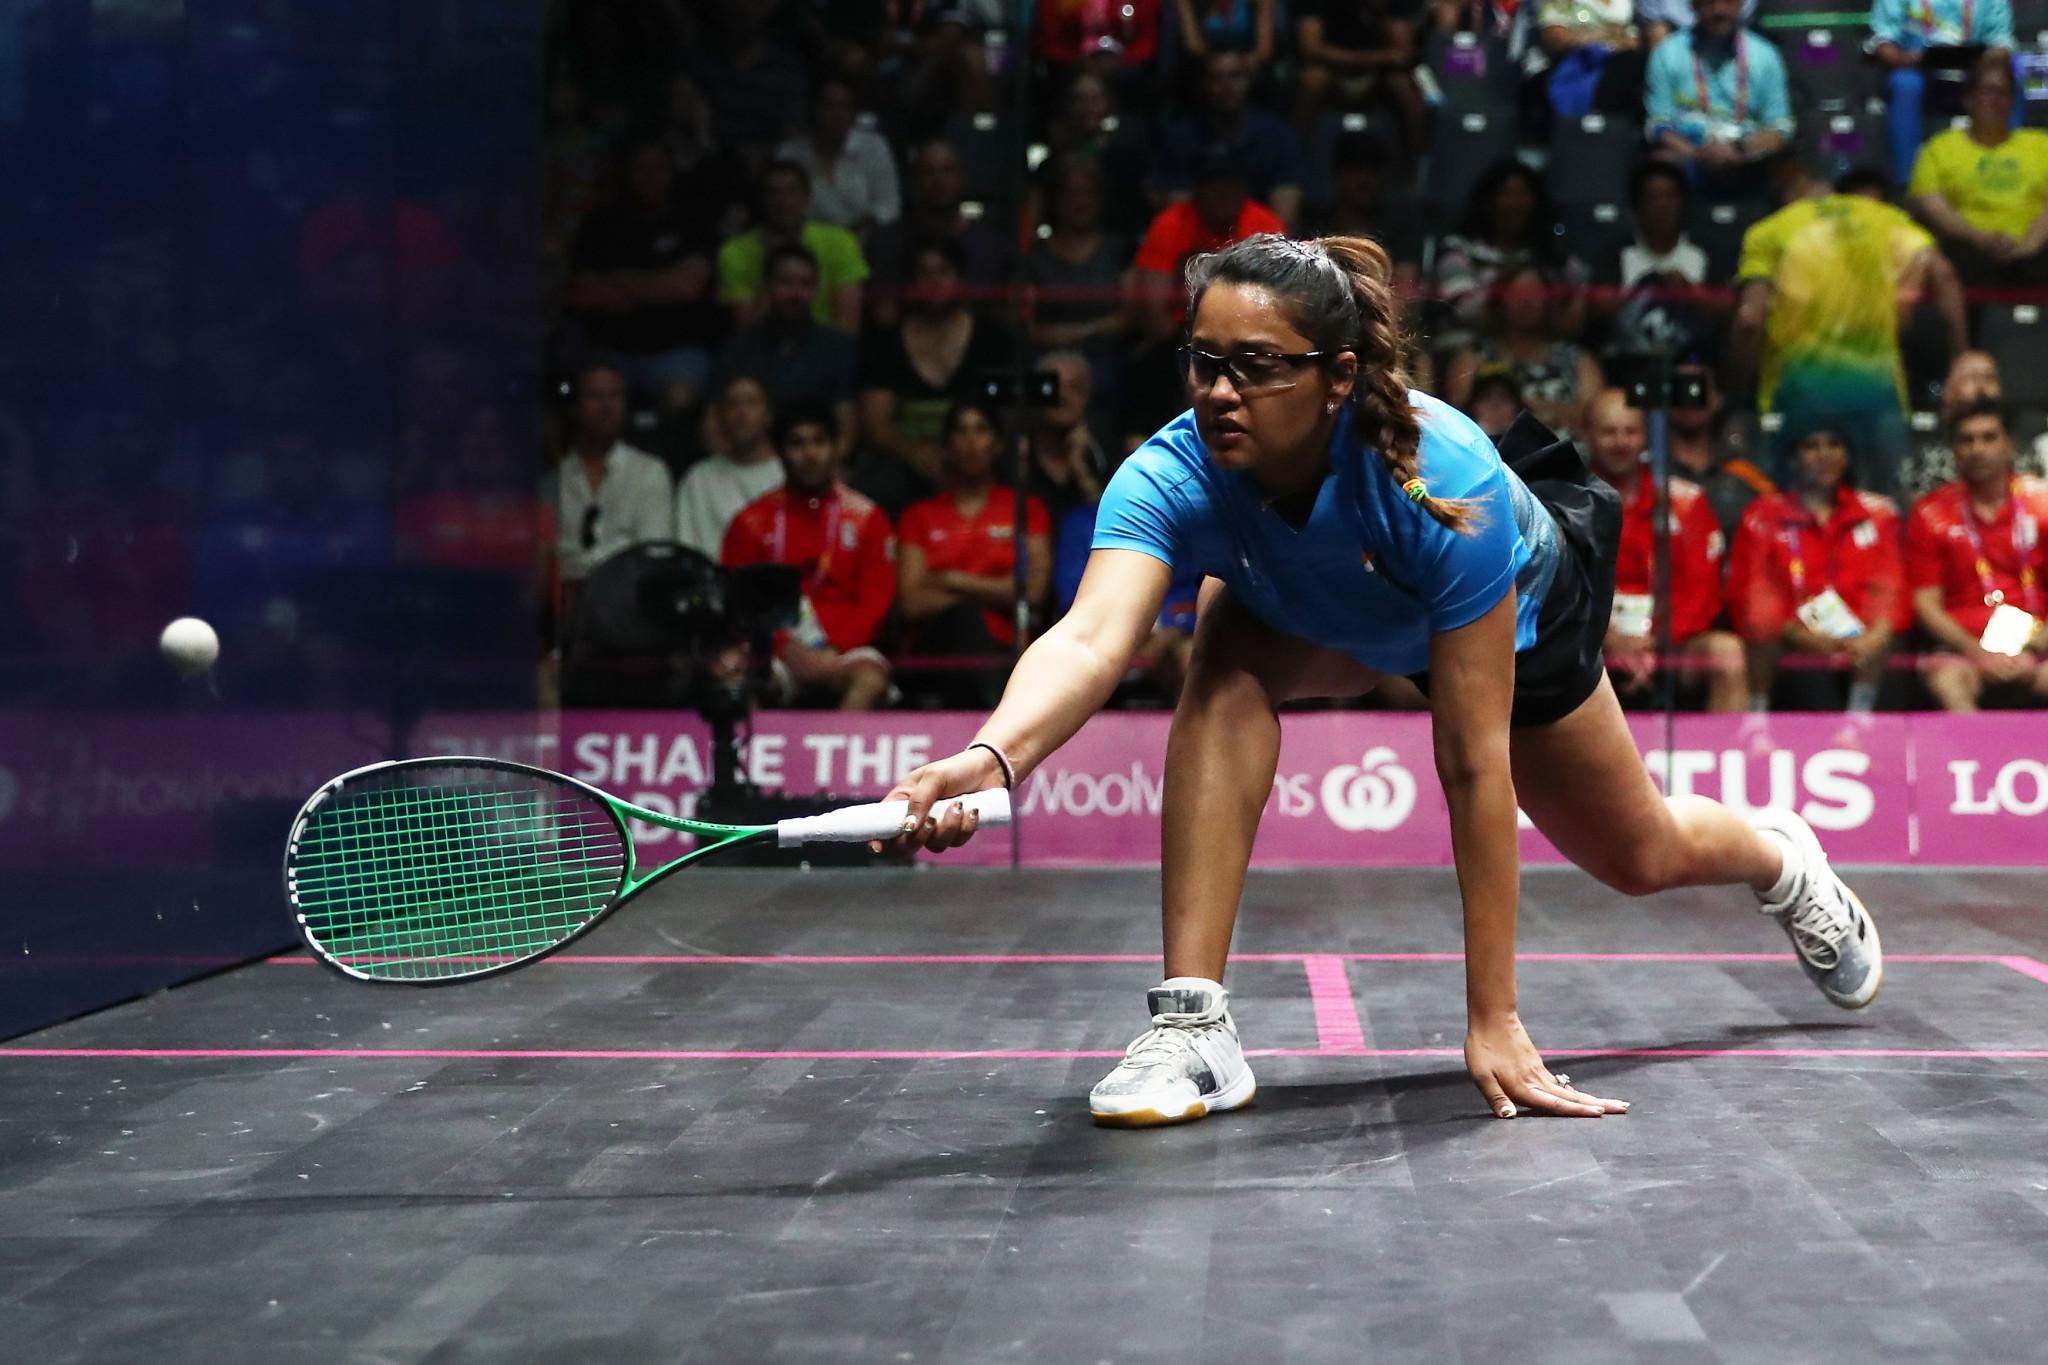 India could hold PSA Challenger Tour events in February and March